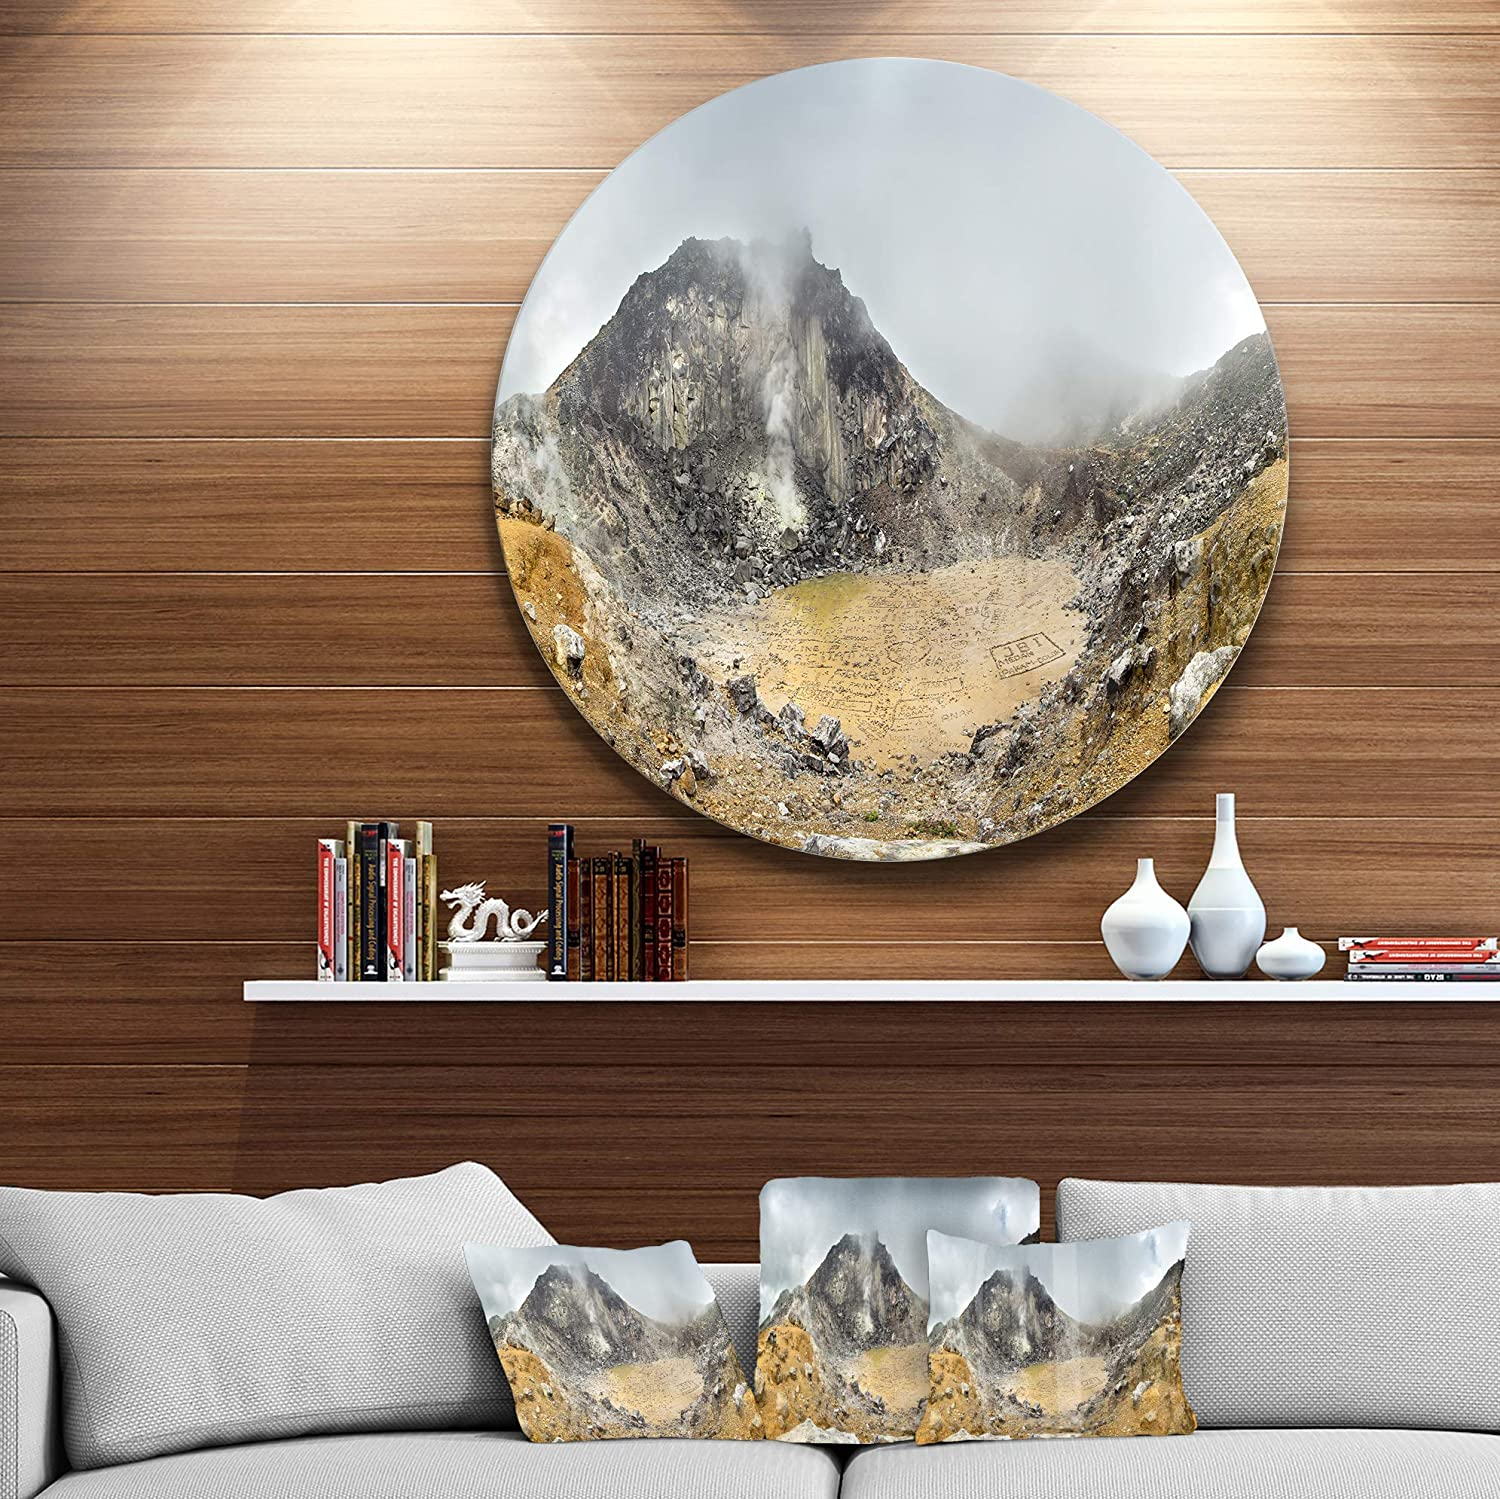 Designart MT11046-C23 Volcano Panorama with Dramatic Sky Landscape Circle Wall Art Disc of 23,Yellow//Orange,23 X 23